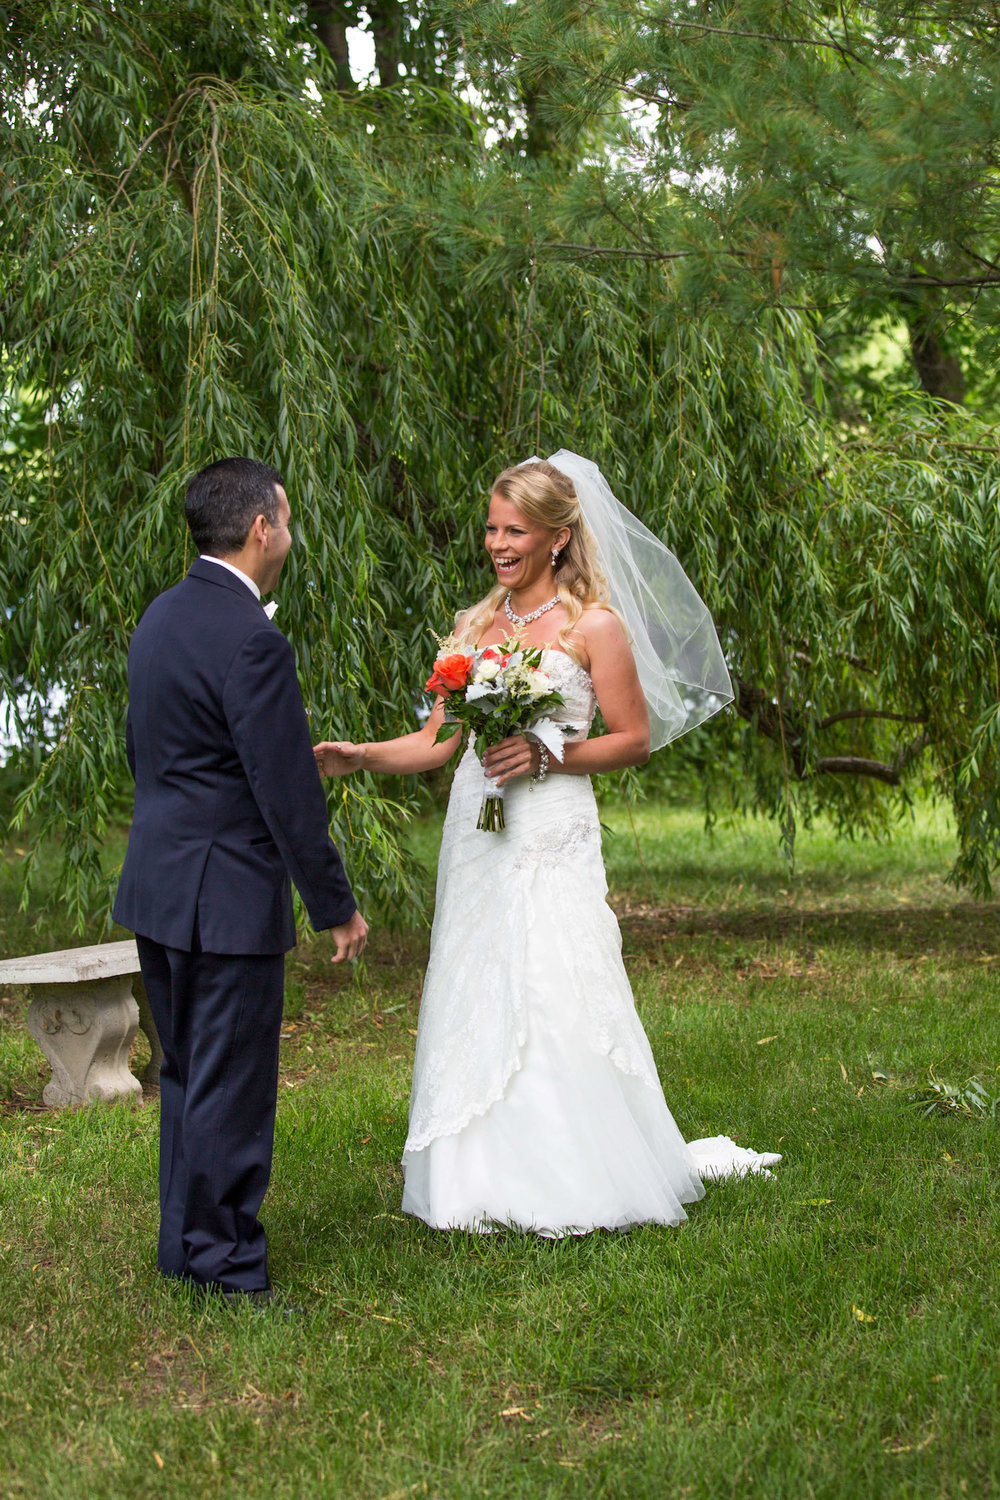 Cindyrellas Garden, outdoor lake ceremony in Minnesota, first look with veil